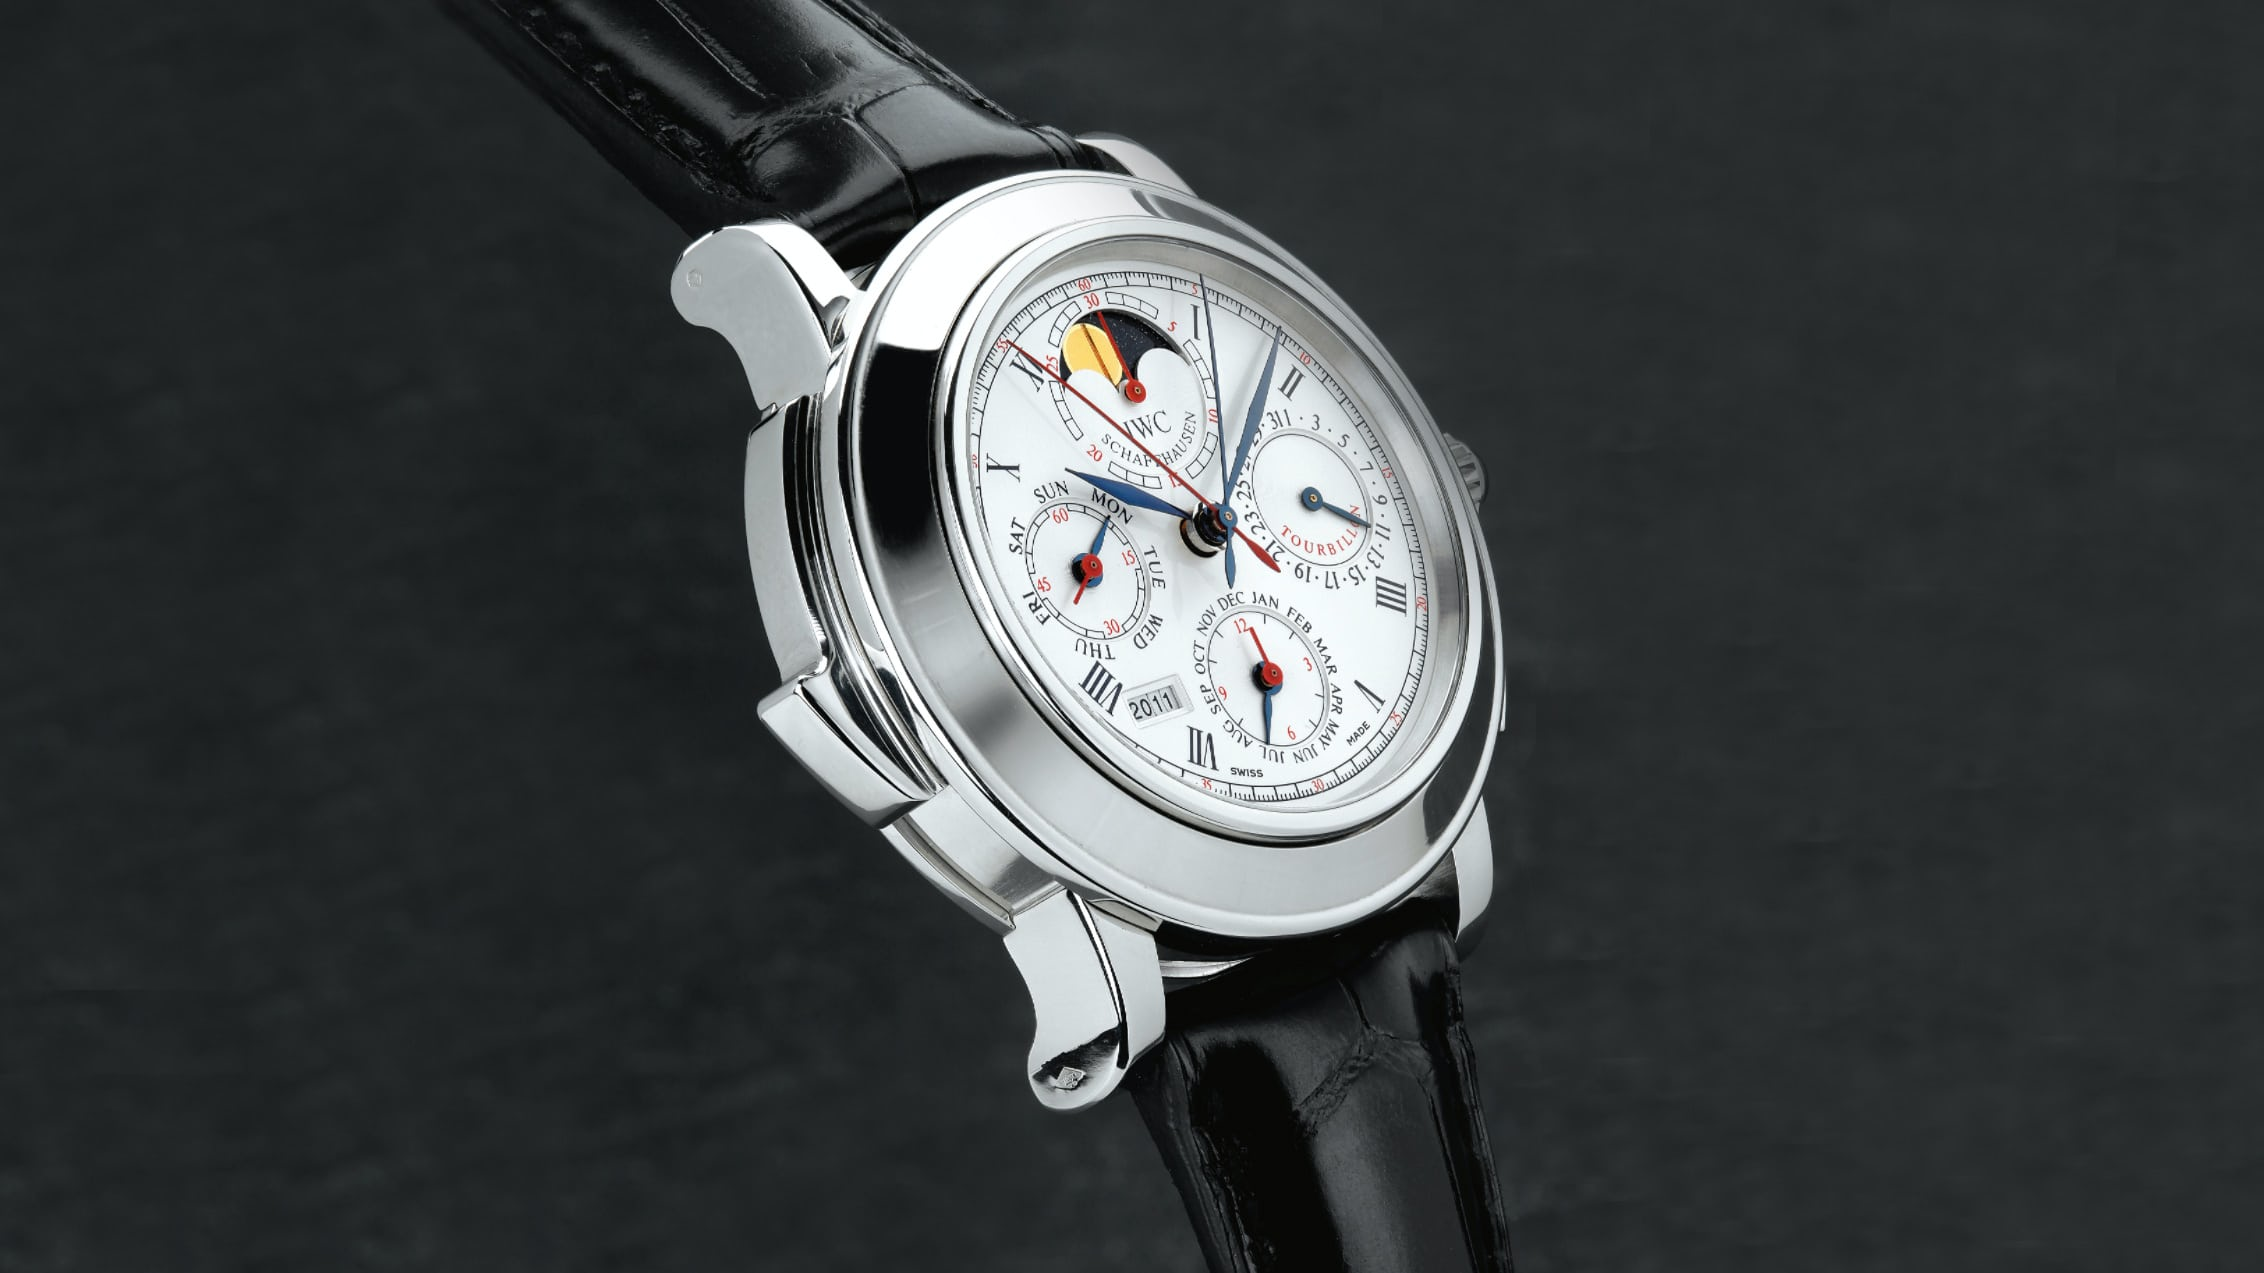 221a4afe233 Four Revolutions  Part 3  A Concise History Of The Mechanical Watch  Revolution (1990-2000) - HODINKEE